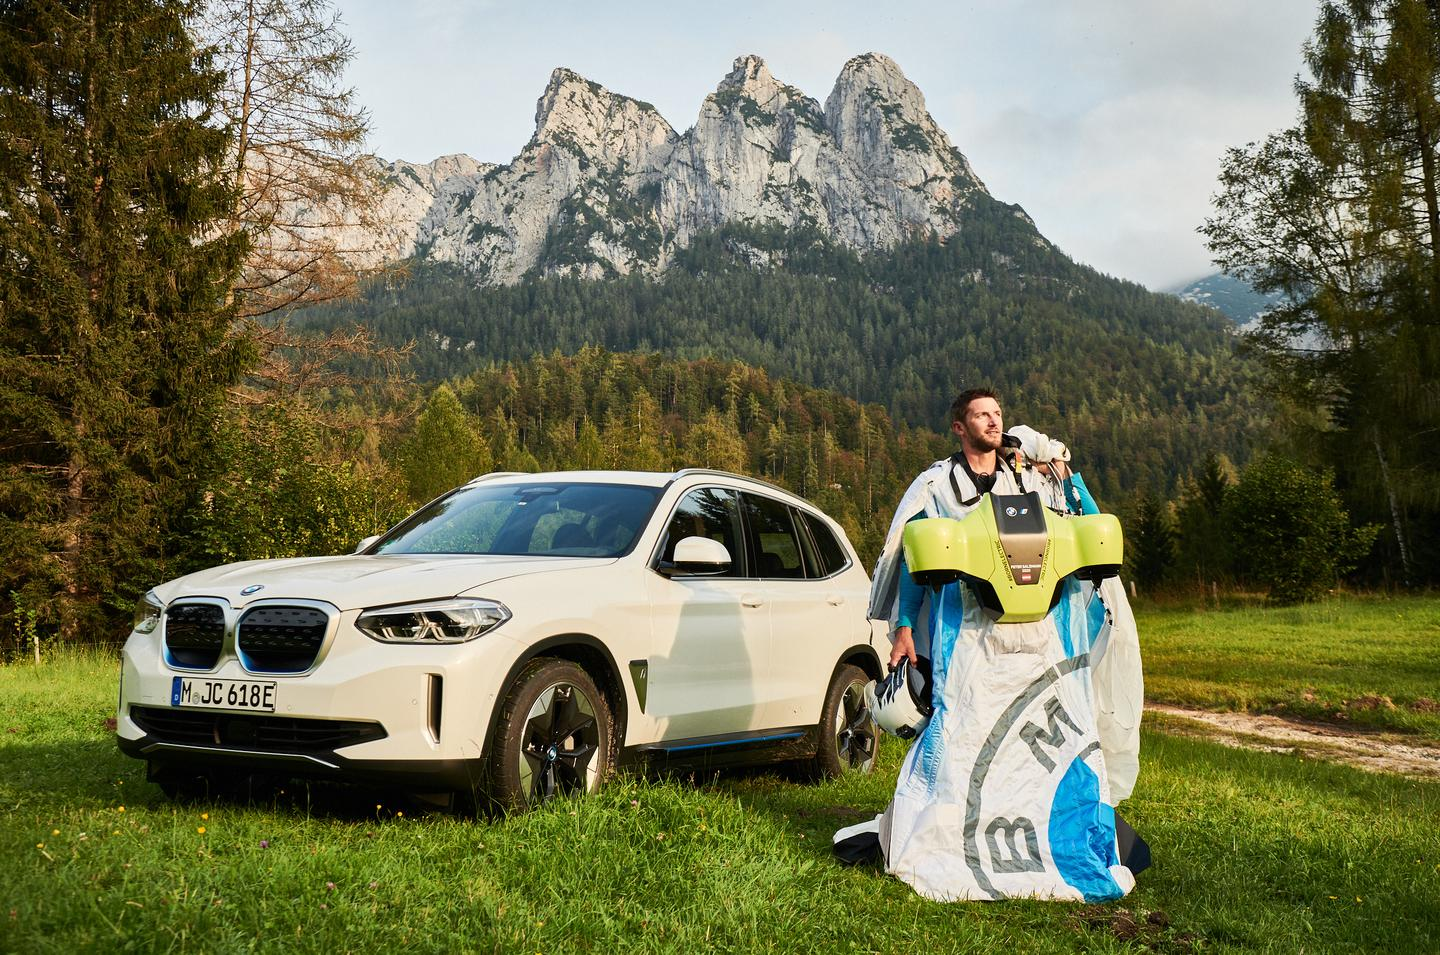 The project was done in partnership with BMW's Designworks studio, as a promotion for BMW's electric iX3